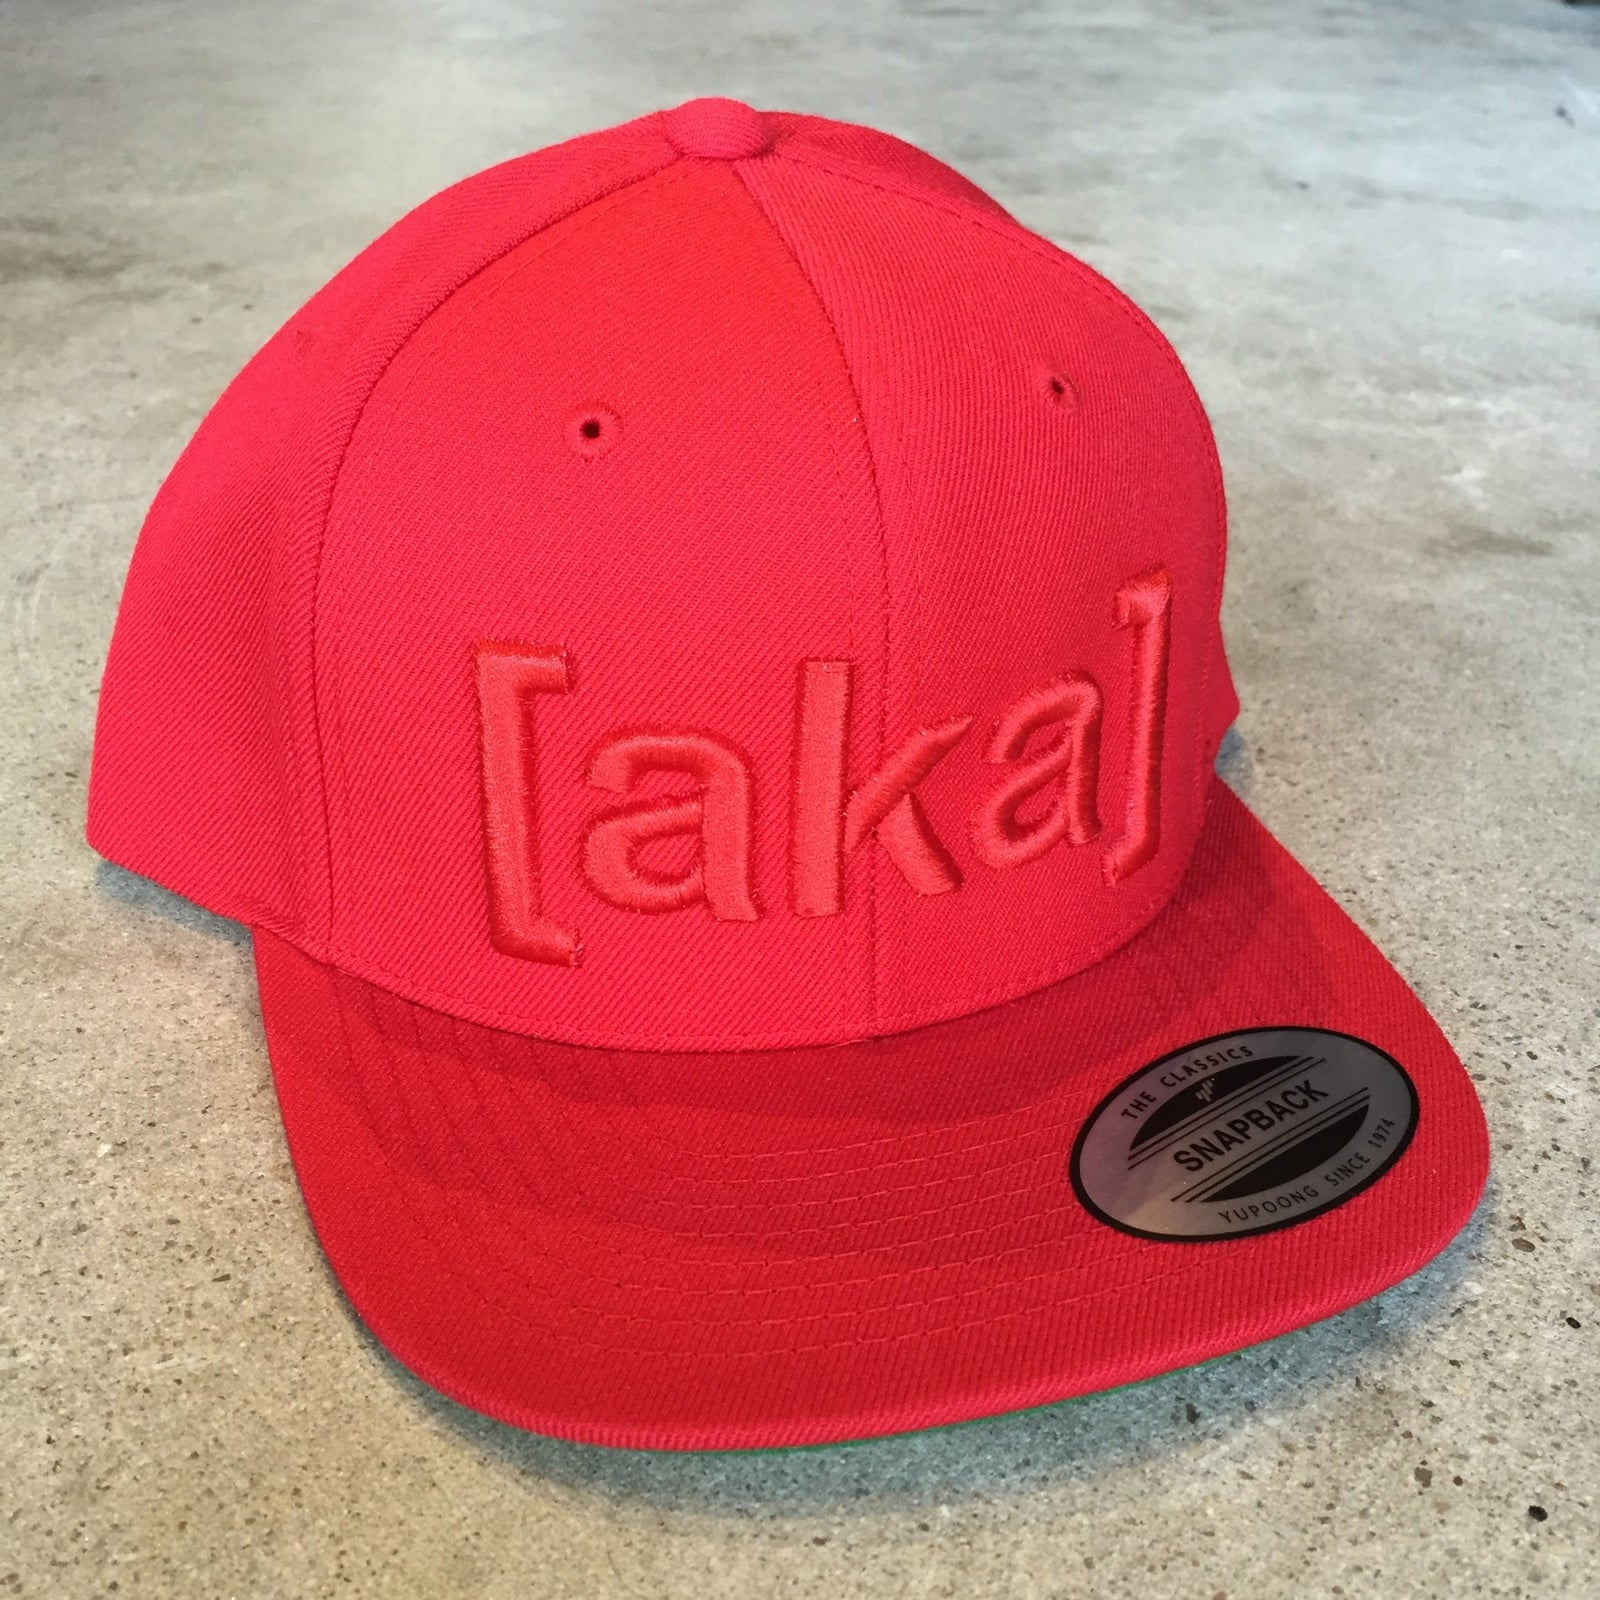 AKA Snapback Hat - Red on Red - [aka]